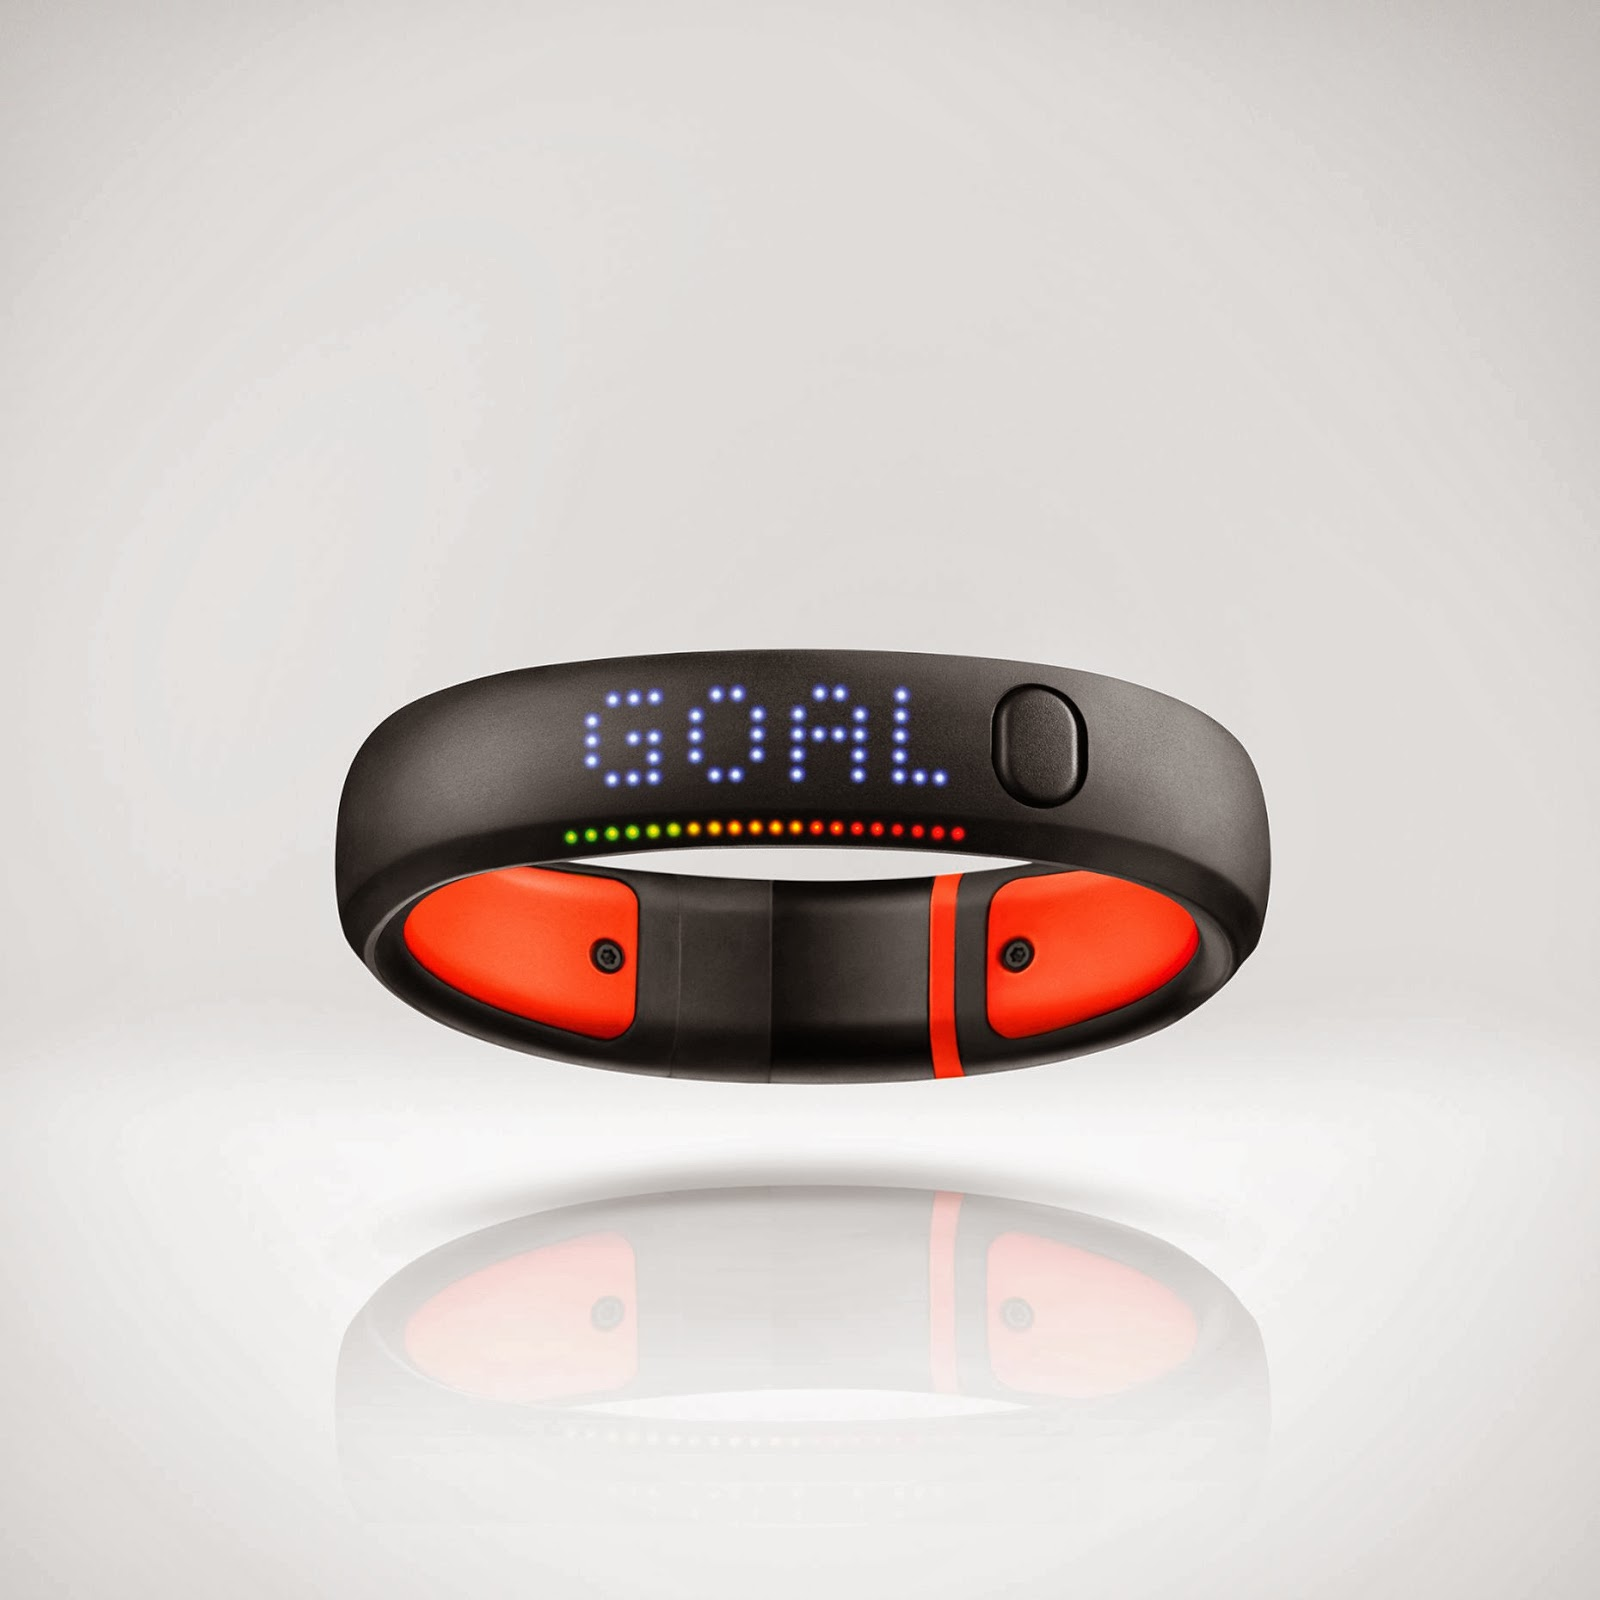 How To Nike: Nike reveals the new FuelBand SE